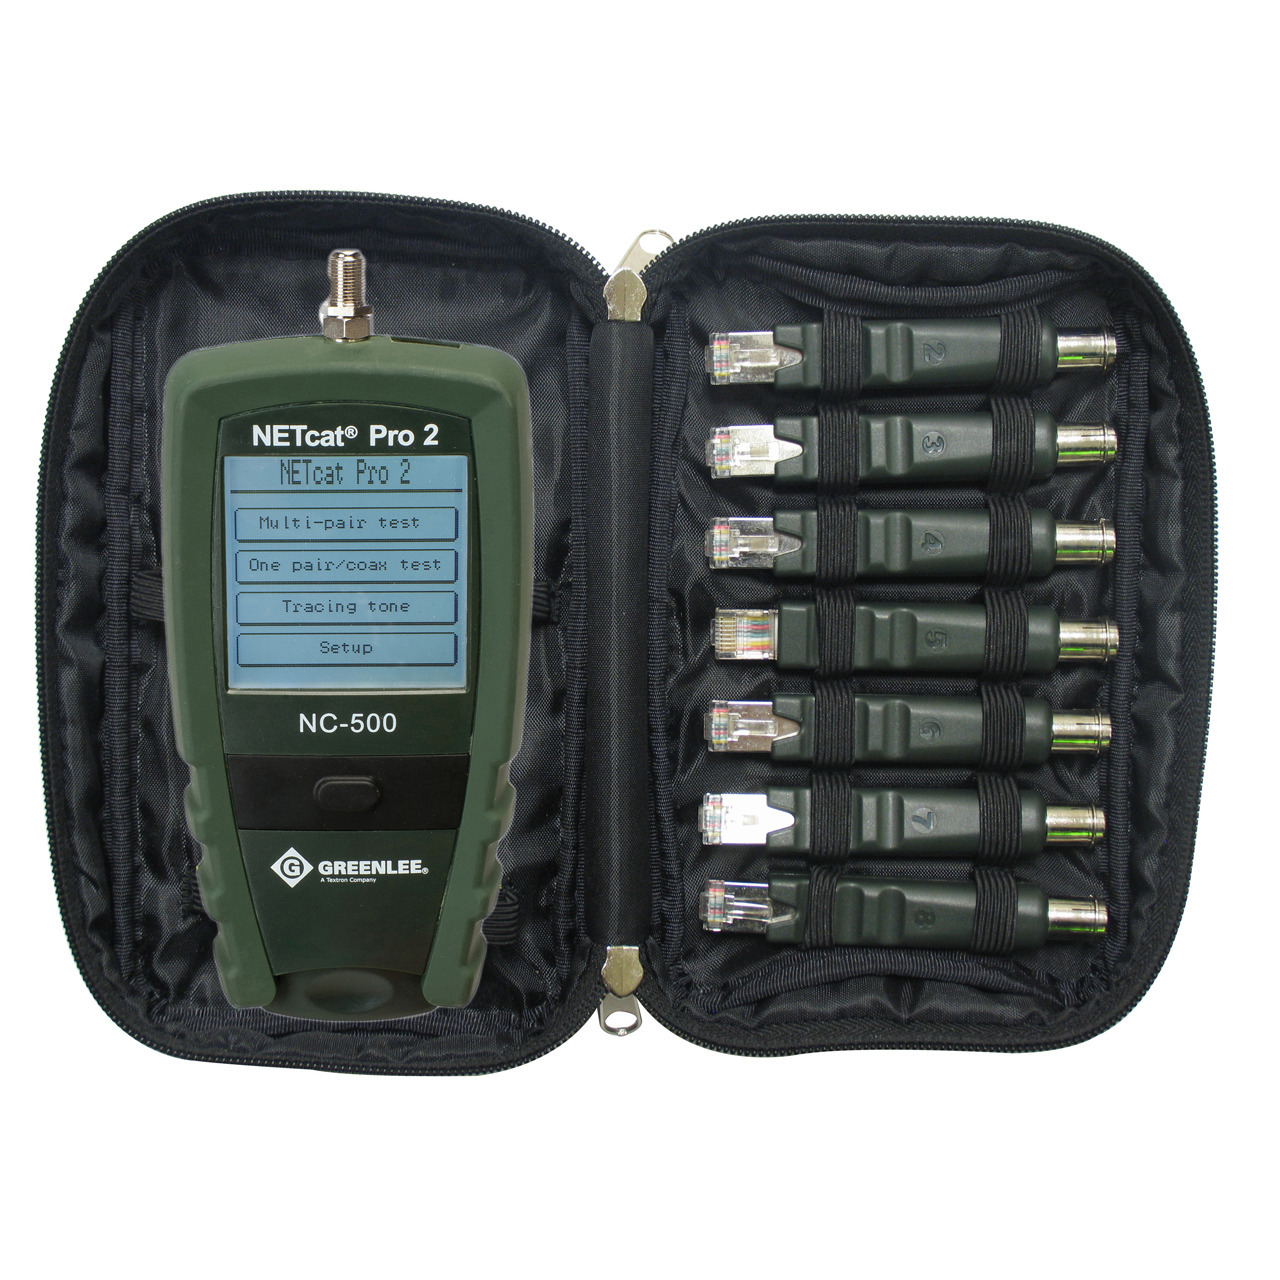 Greenlee Verdrahtungstester-Set NC-520 NETcat Pro2